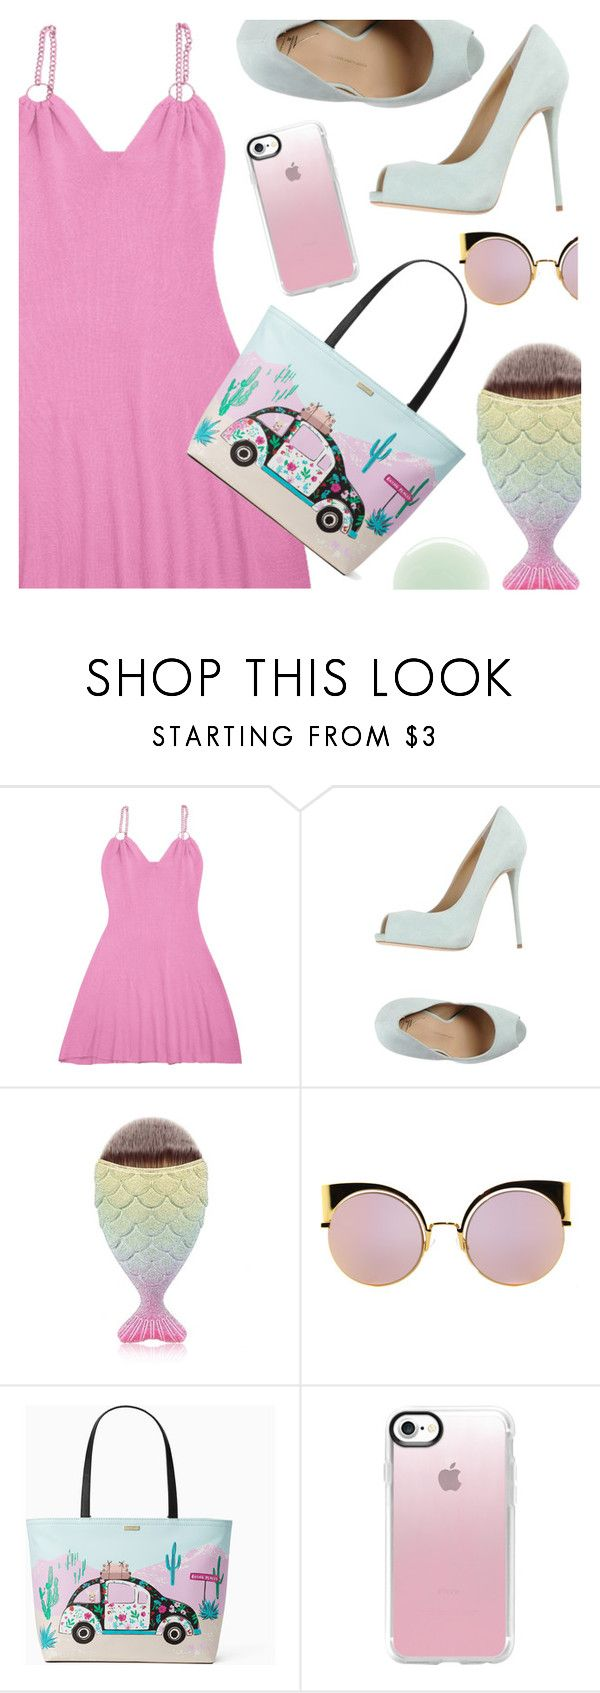 """Pink dress by Zaful"" by deeyanago ❤ liked on Polyvore featuring Giuseppe Zanotti, Fendi, Kate Spade, Casetify and Nails Inc."